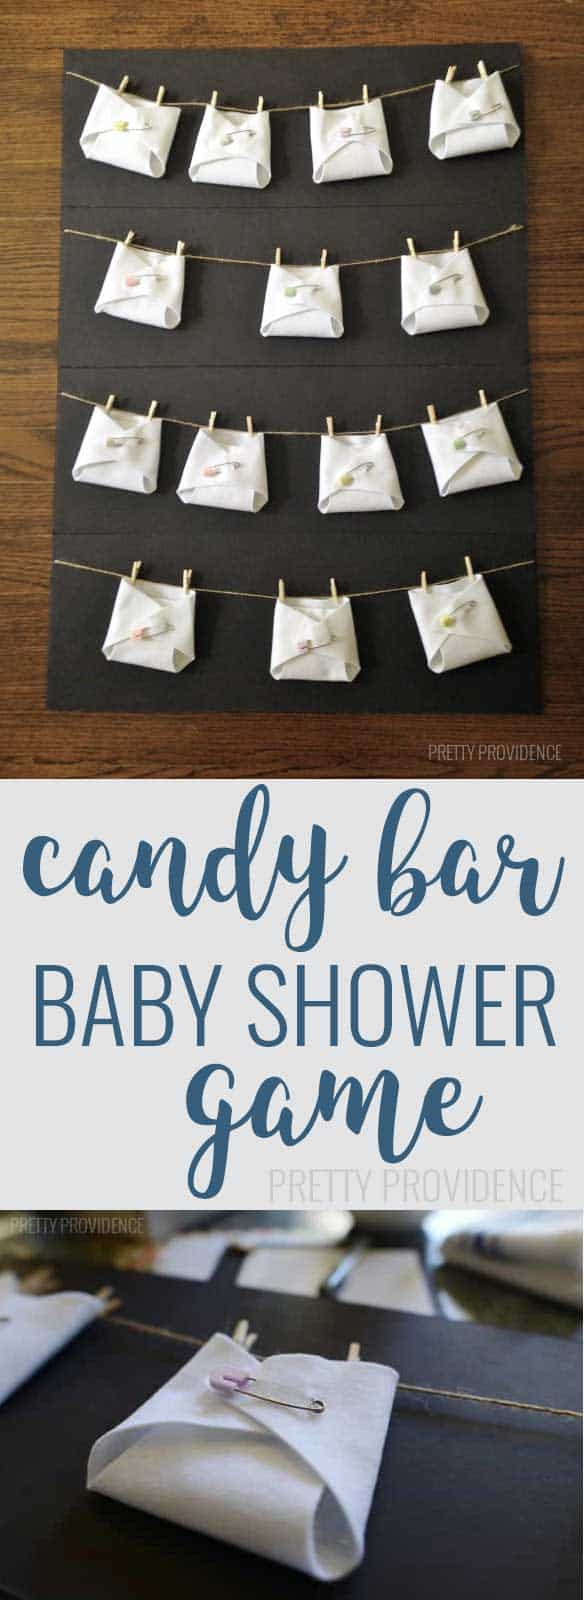 Candy bar in the diaper baby shower game - she did this in such a cute and classy way!!!